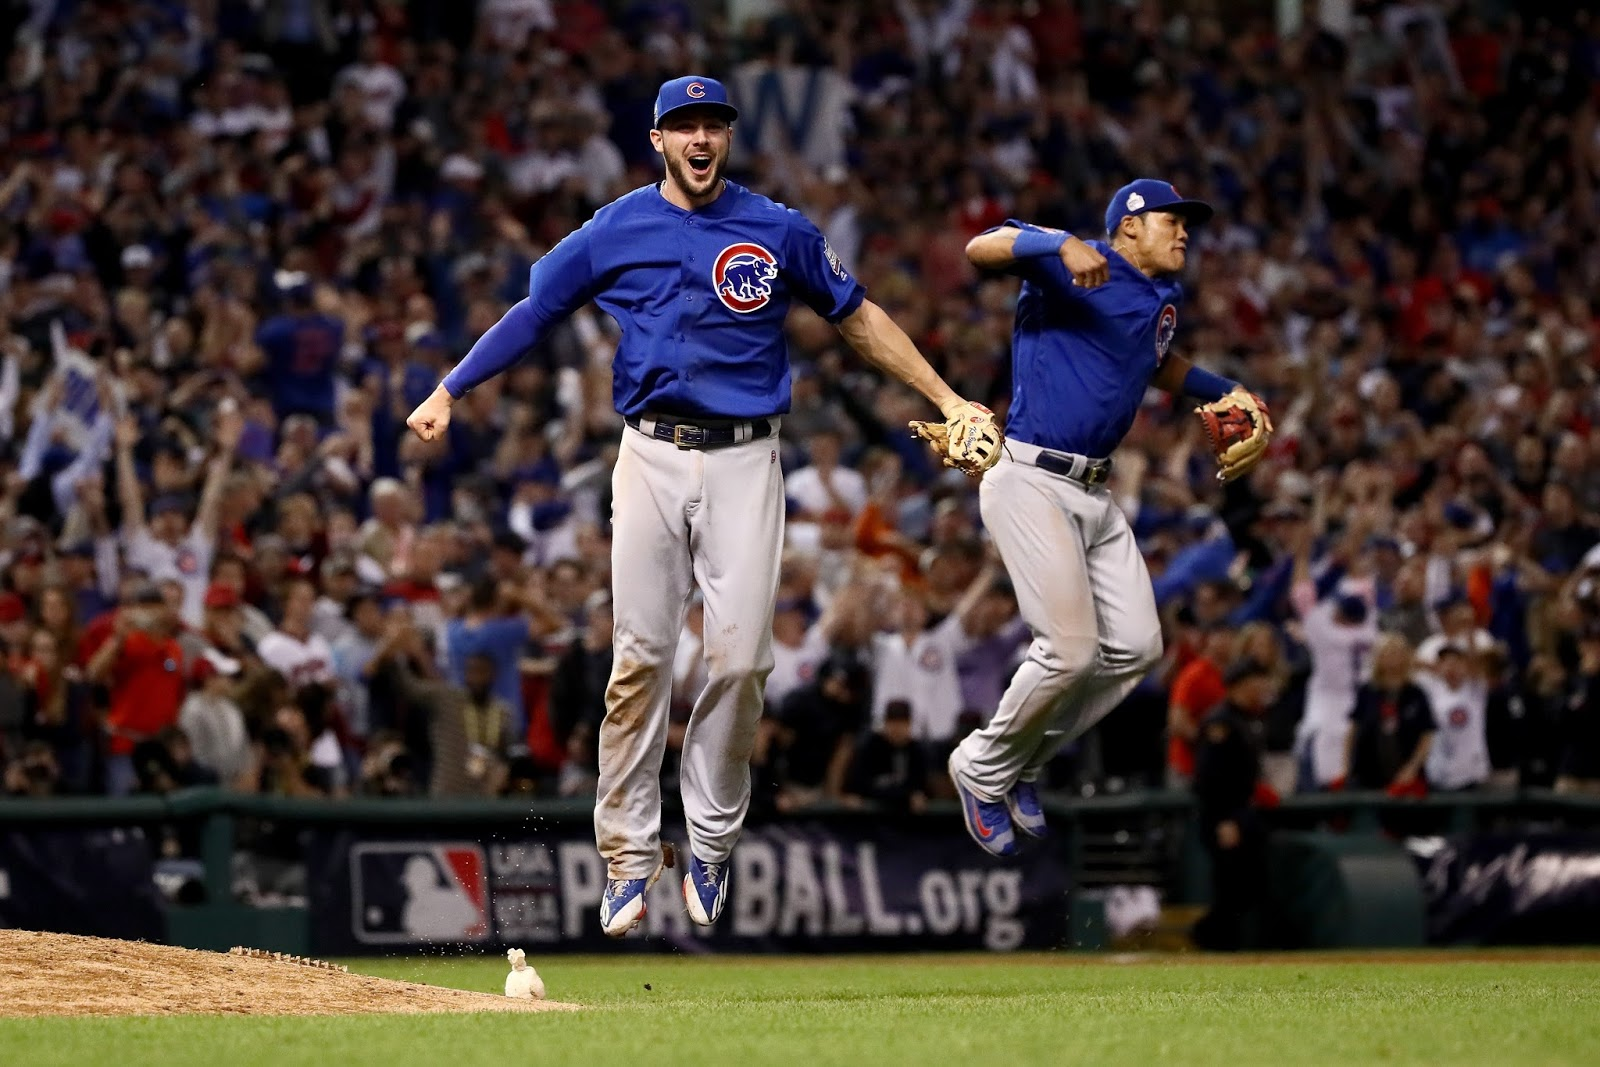 FOX to re-air Game 7 of 2016 World Series Saturday | Fox 59